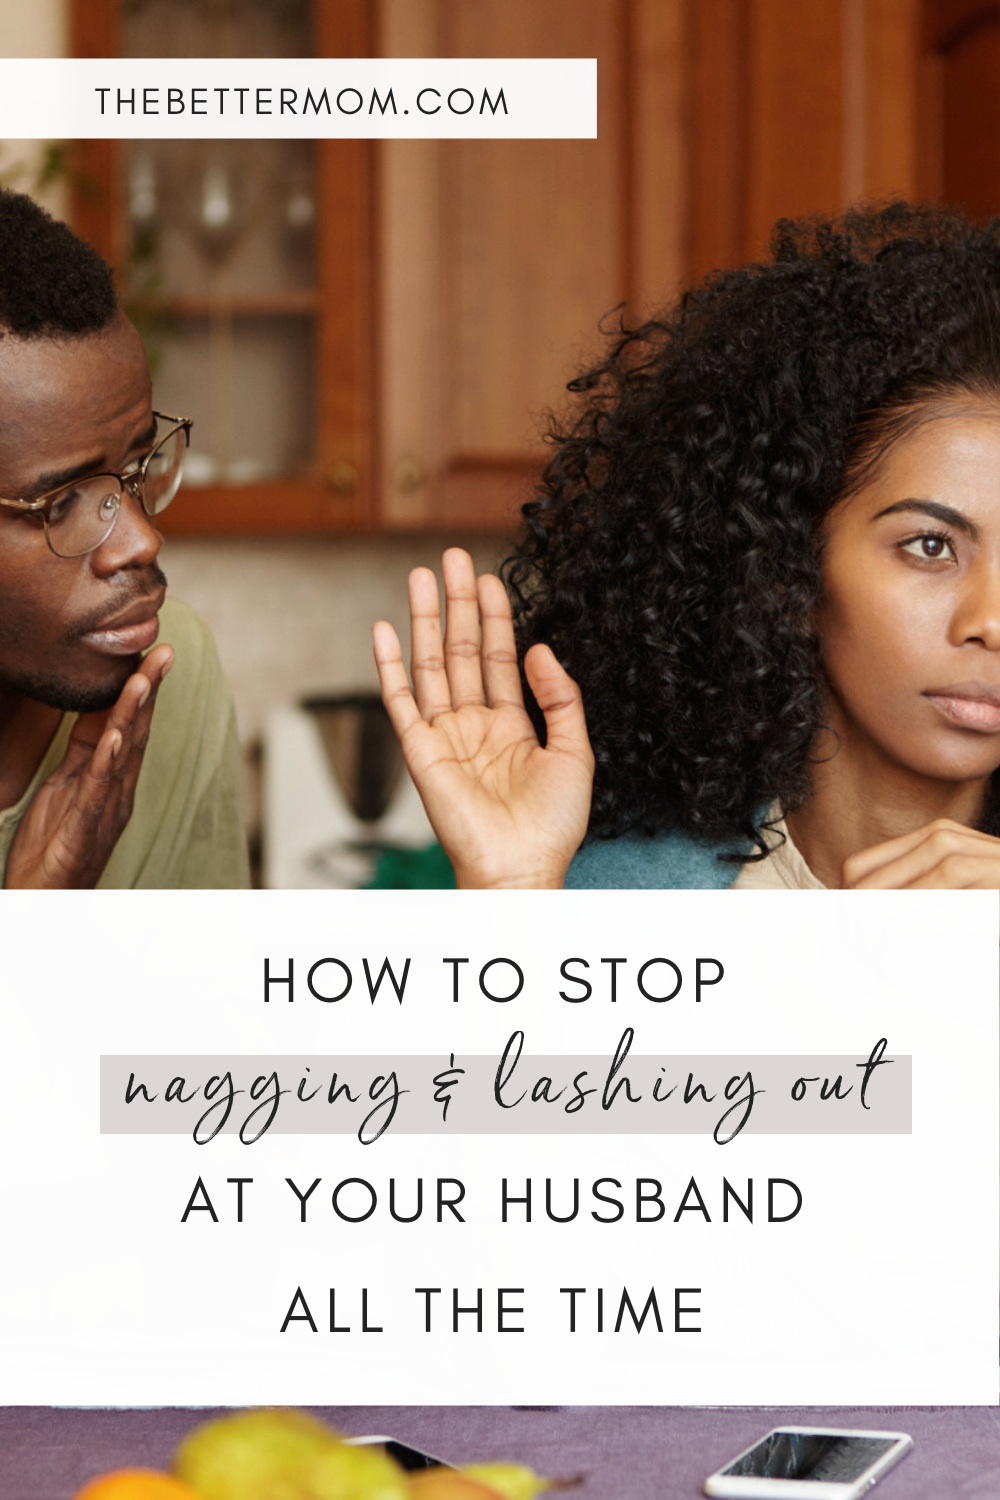 Do you struggle with communication in your marriage? Do you have ideas for connection, but find yourself nagging and complaining when you talk? We're  Sharing ideas for how to be in your relationship on the blog today!